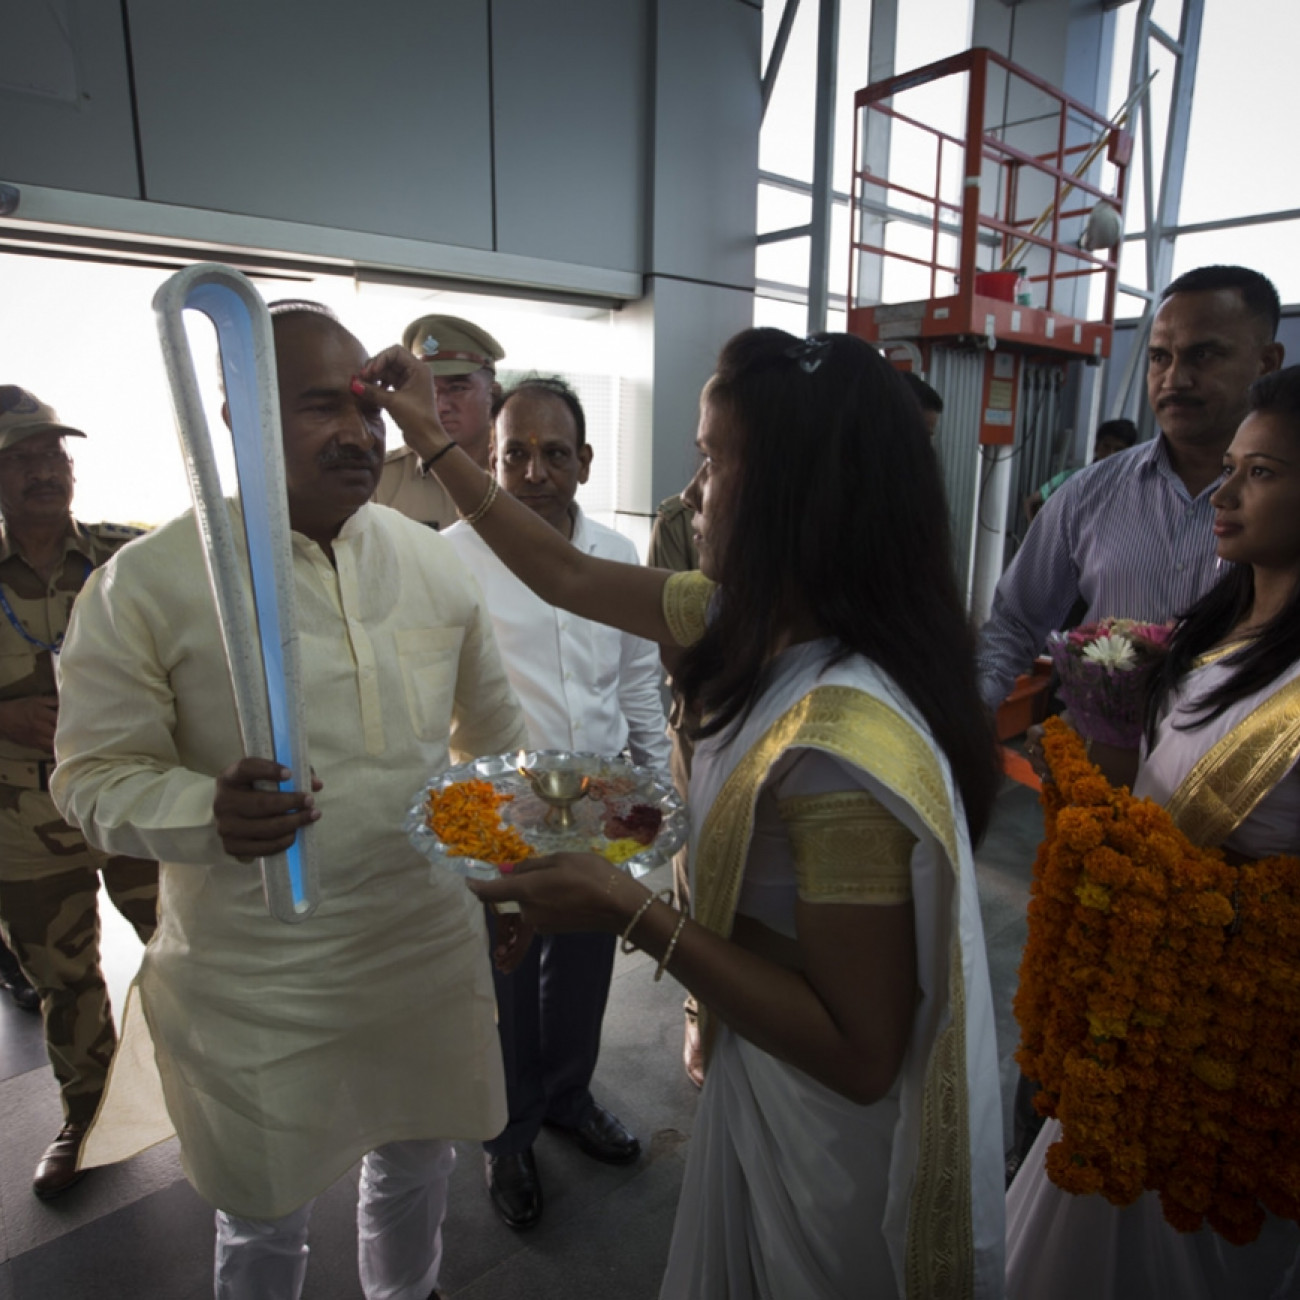 Minister of Sports, Uttrakhand, the Hon Mr Arvind Pandey carrying the Baton as it receives a traditional Hindu blessing at Dehradun airport